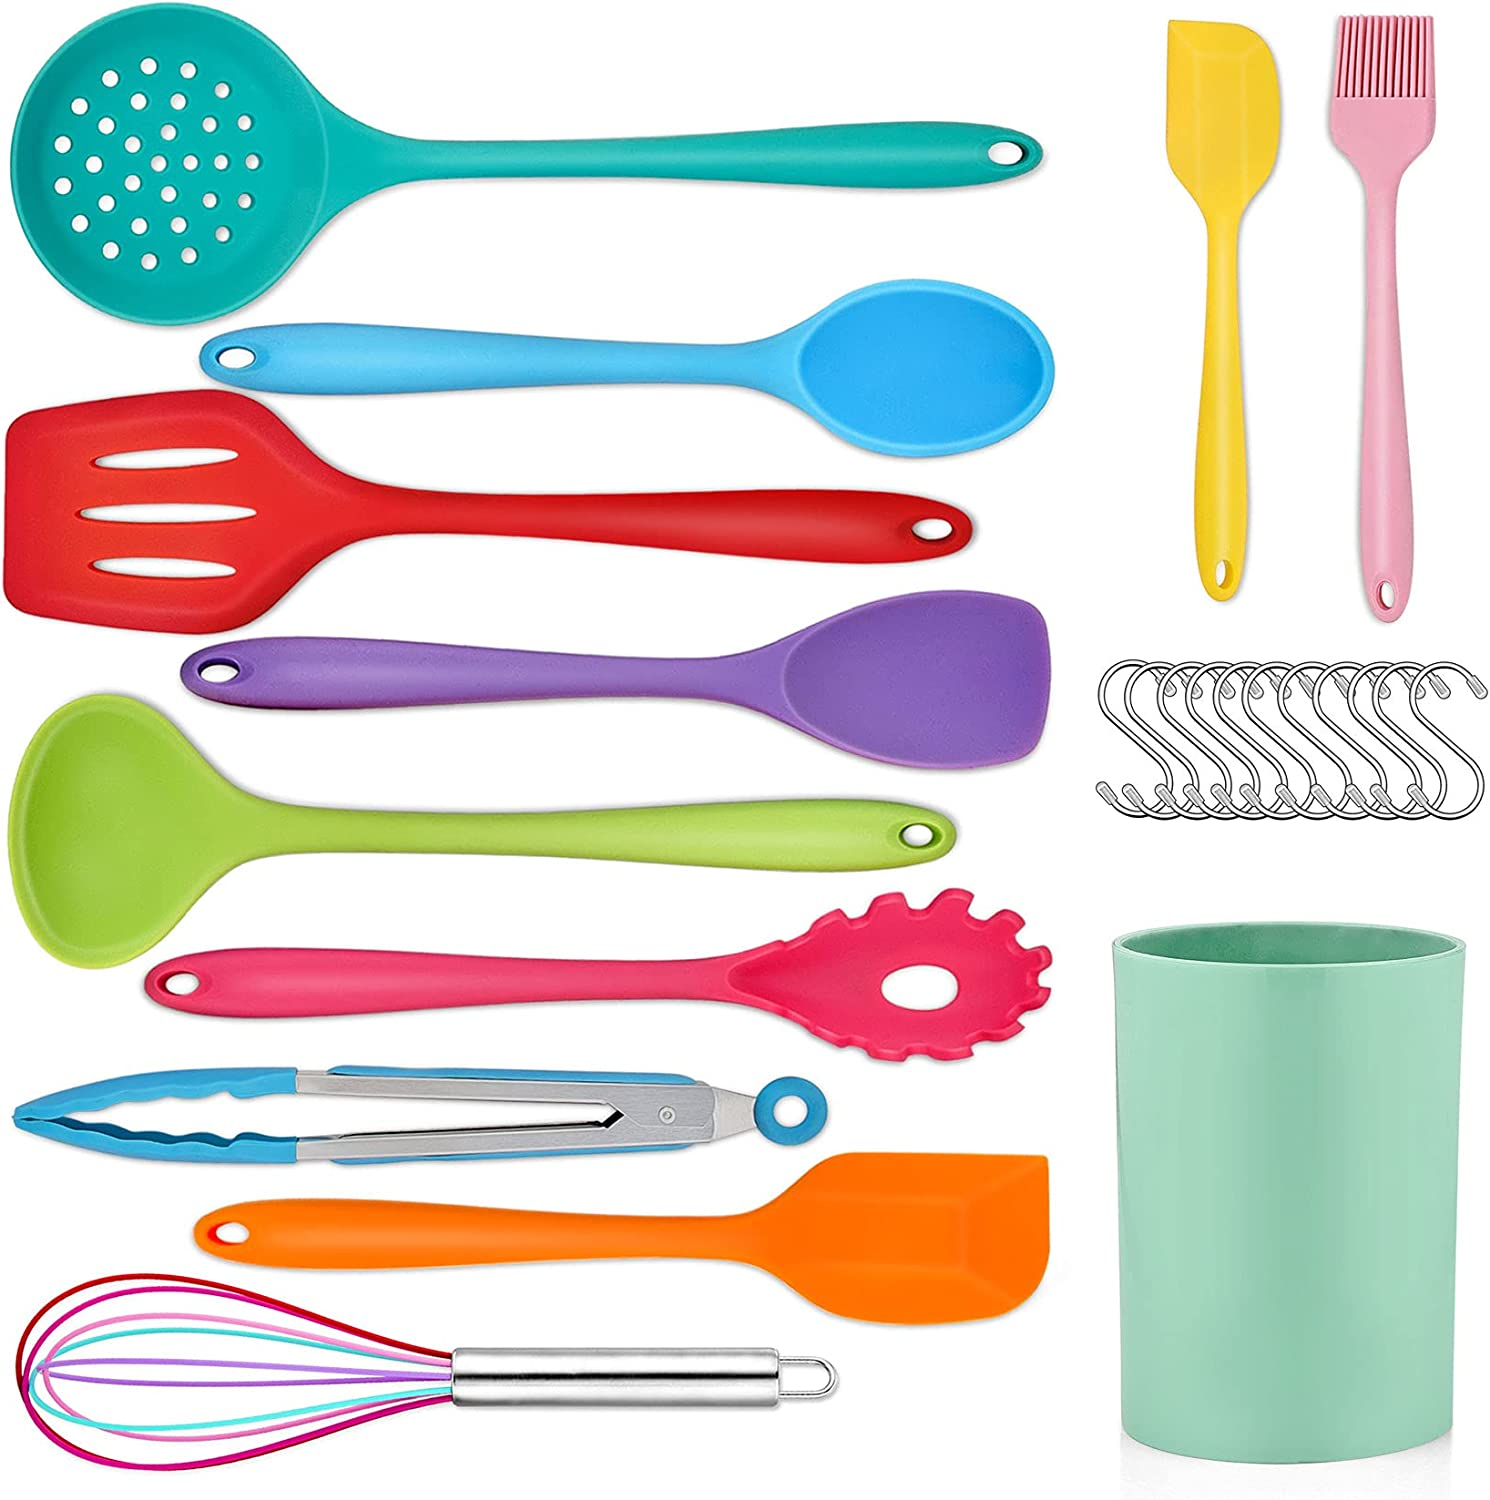 Mail order Kitchen Utensil Set PP CHEF 23 Silicone Super beauty product restock quality top! K Cooking Pcs Utensils